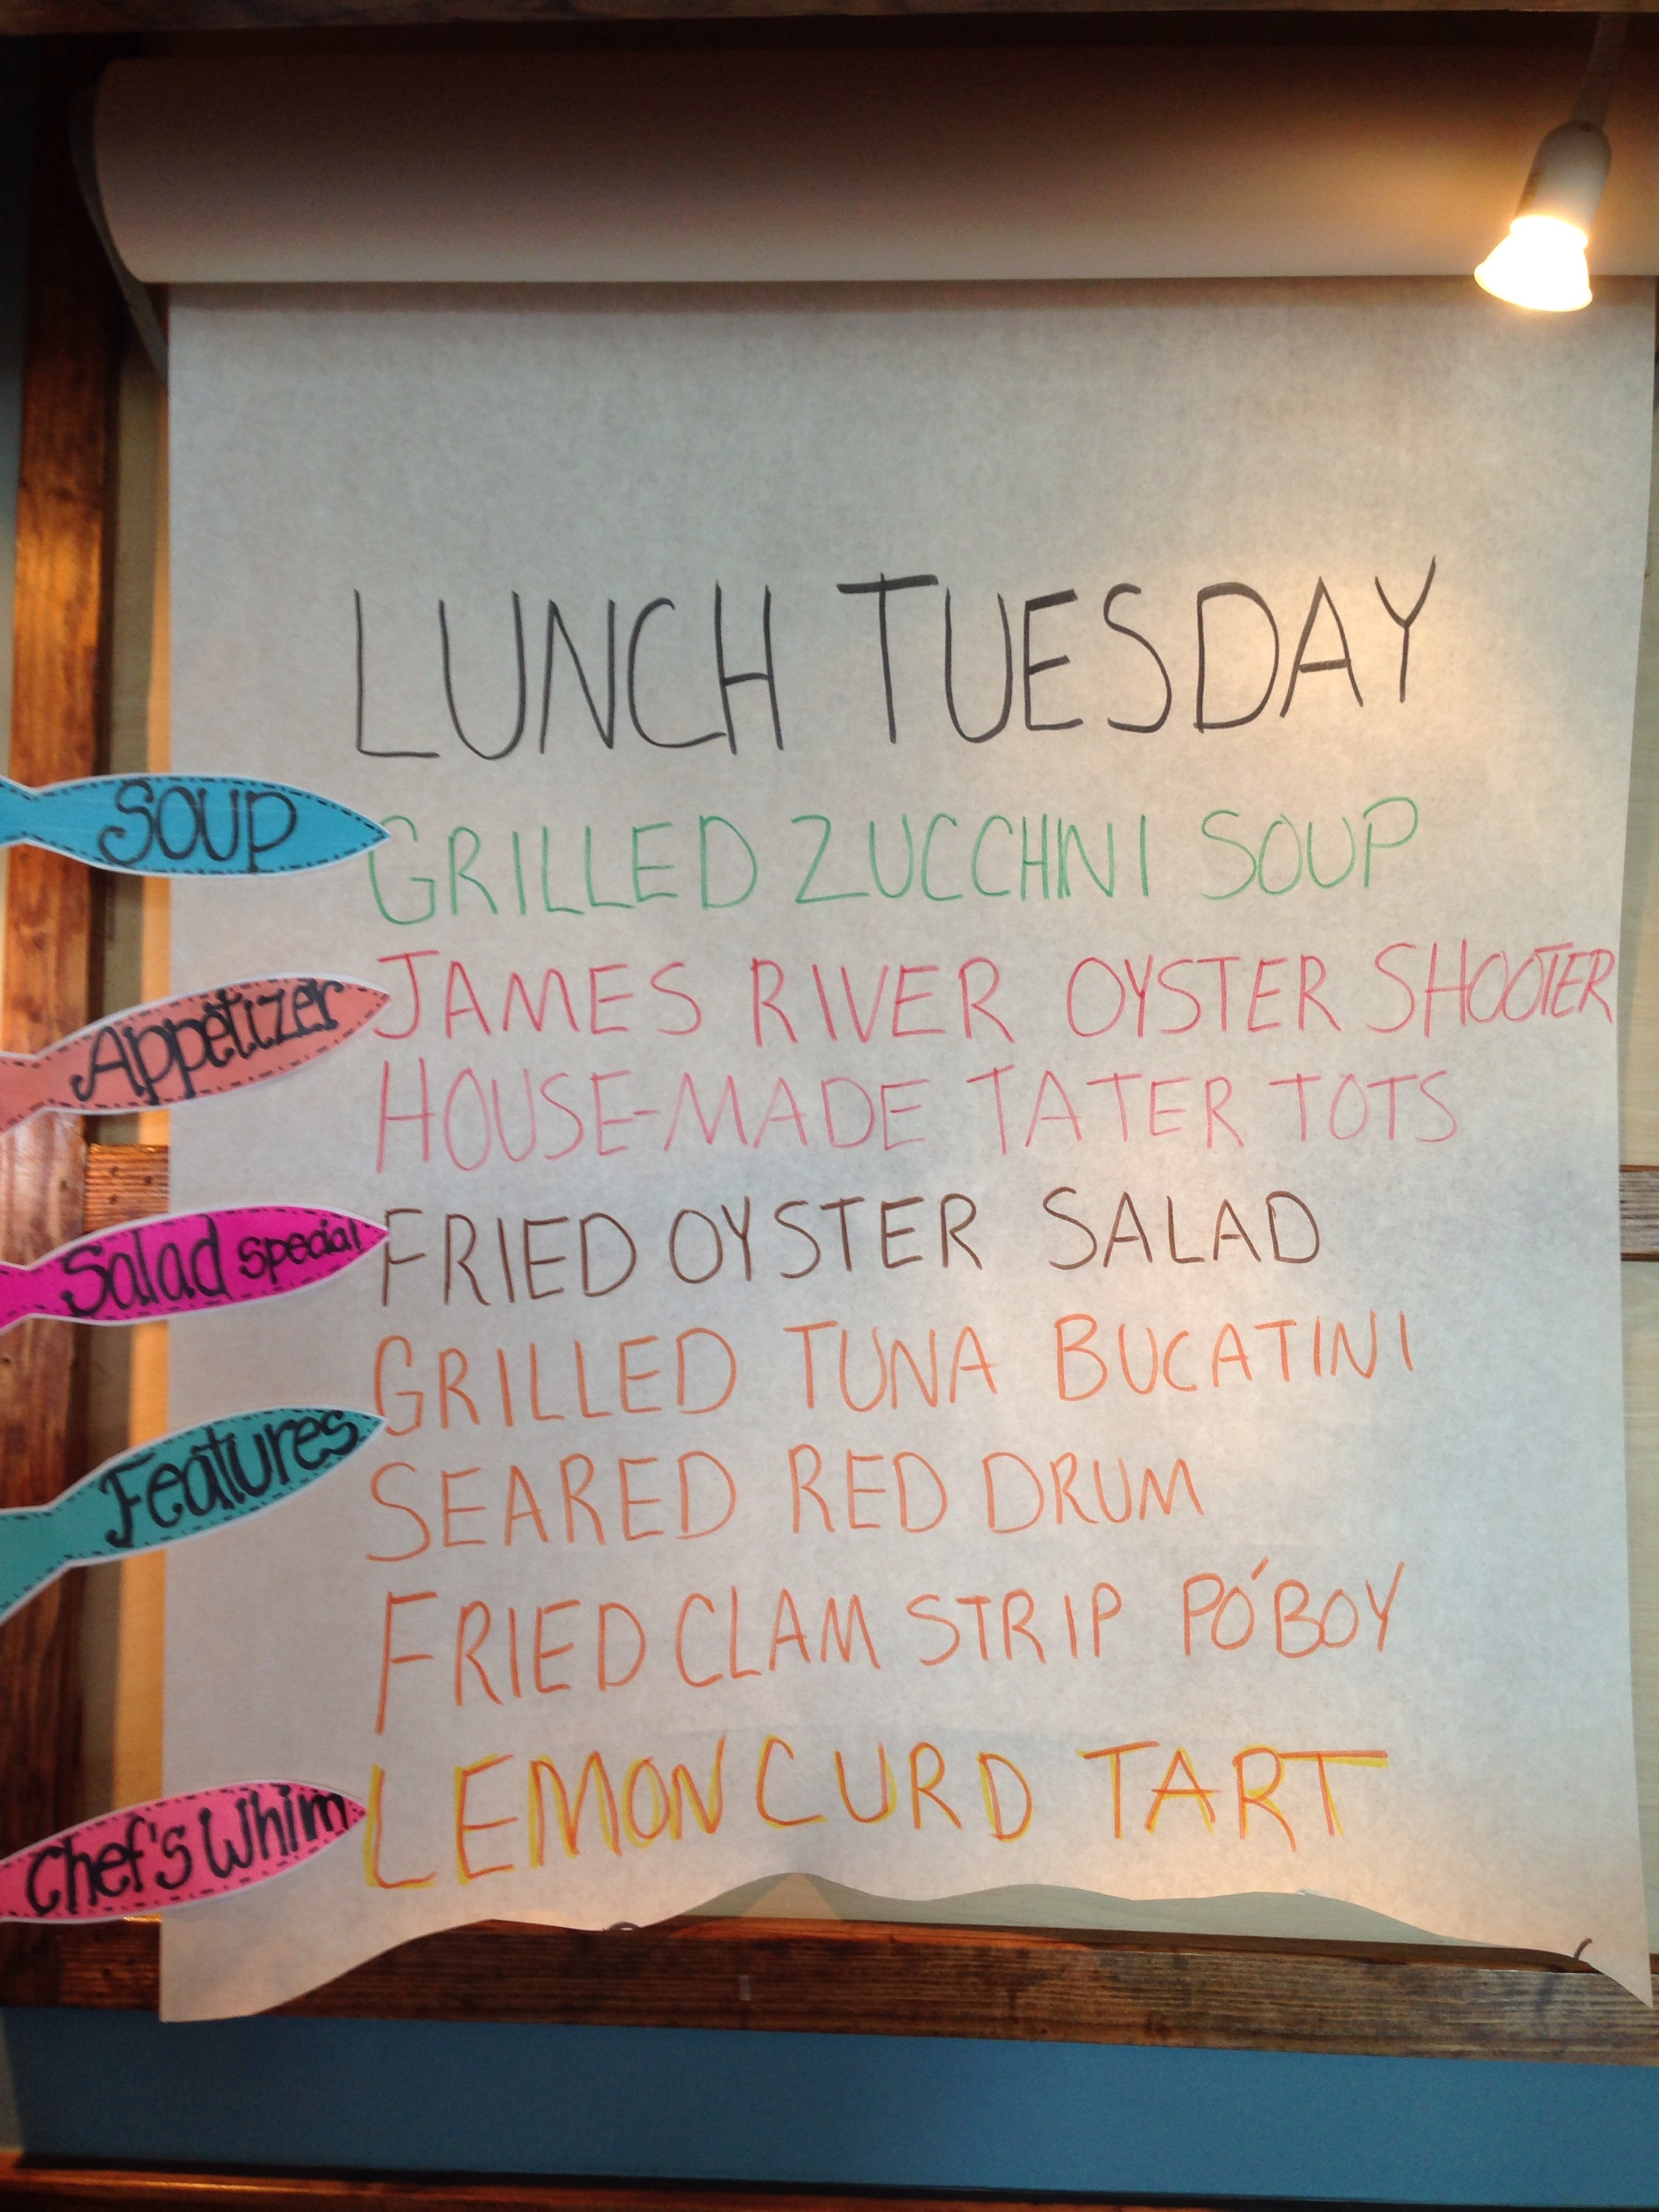 Tuesday may 5 lunch specials blue water grill - Bluewater grill seafood restaurant oyster bar ...